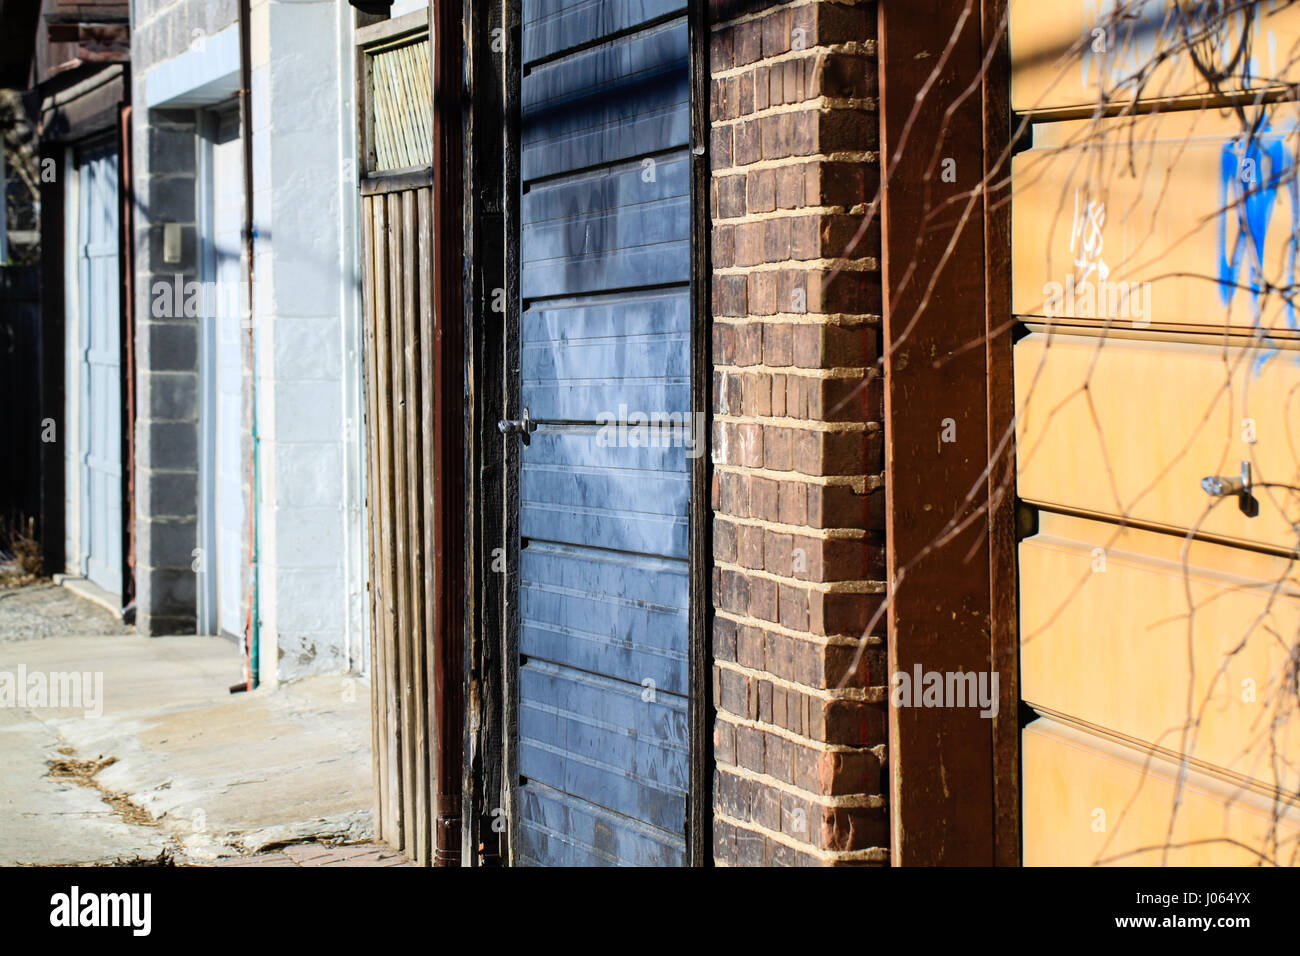 Beautiful Back Alley. Juxtaposition Of Colorful Garage Doors And Variety Of  Structures In An Alley Behind